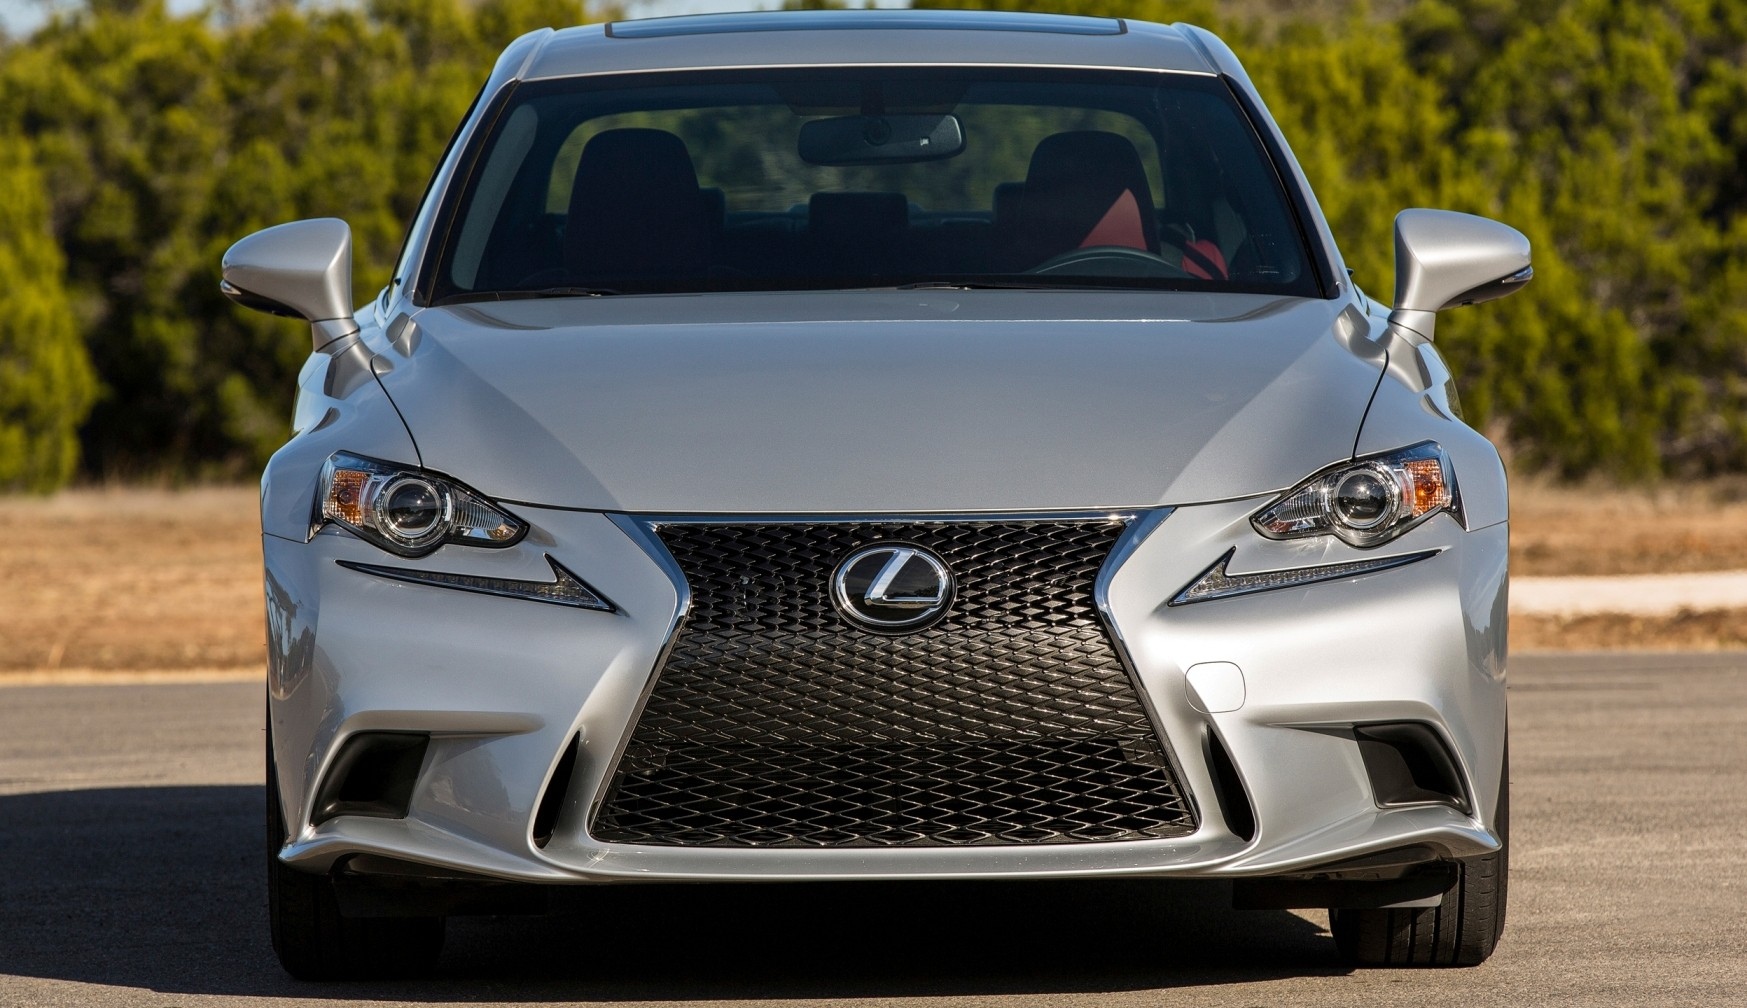 2014 lexus is 350 f sport 021. Black Bedroom Furniture Sets. Home Design Ideas